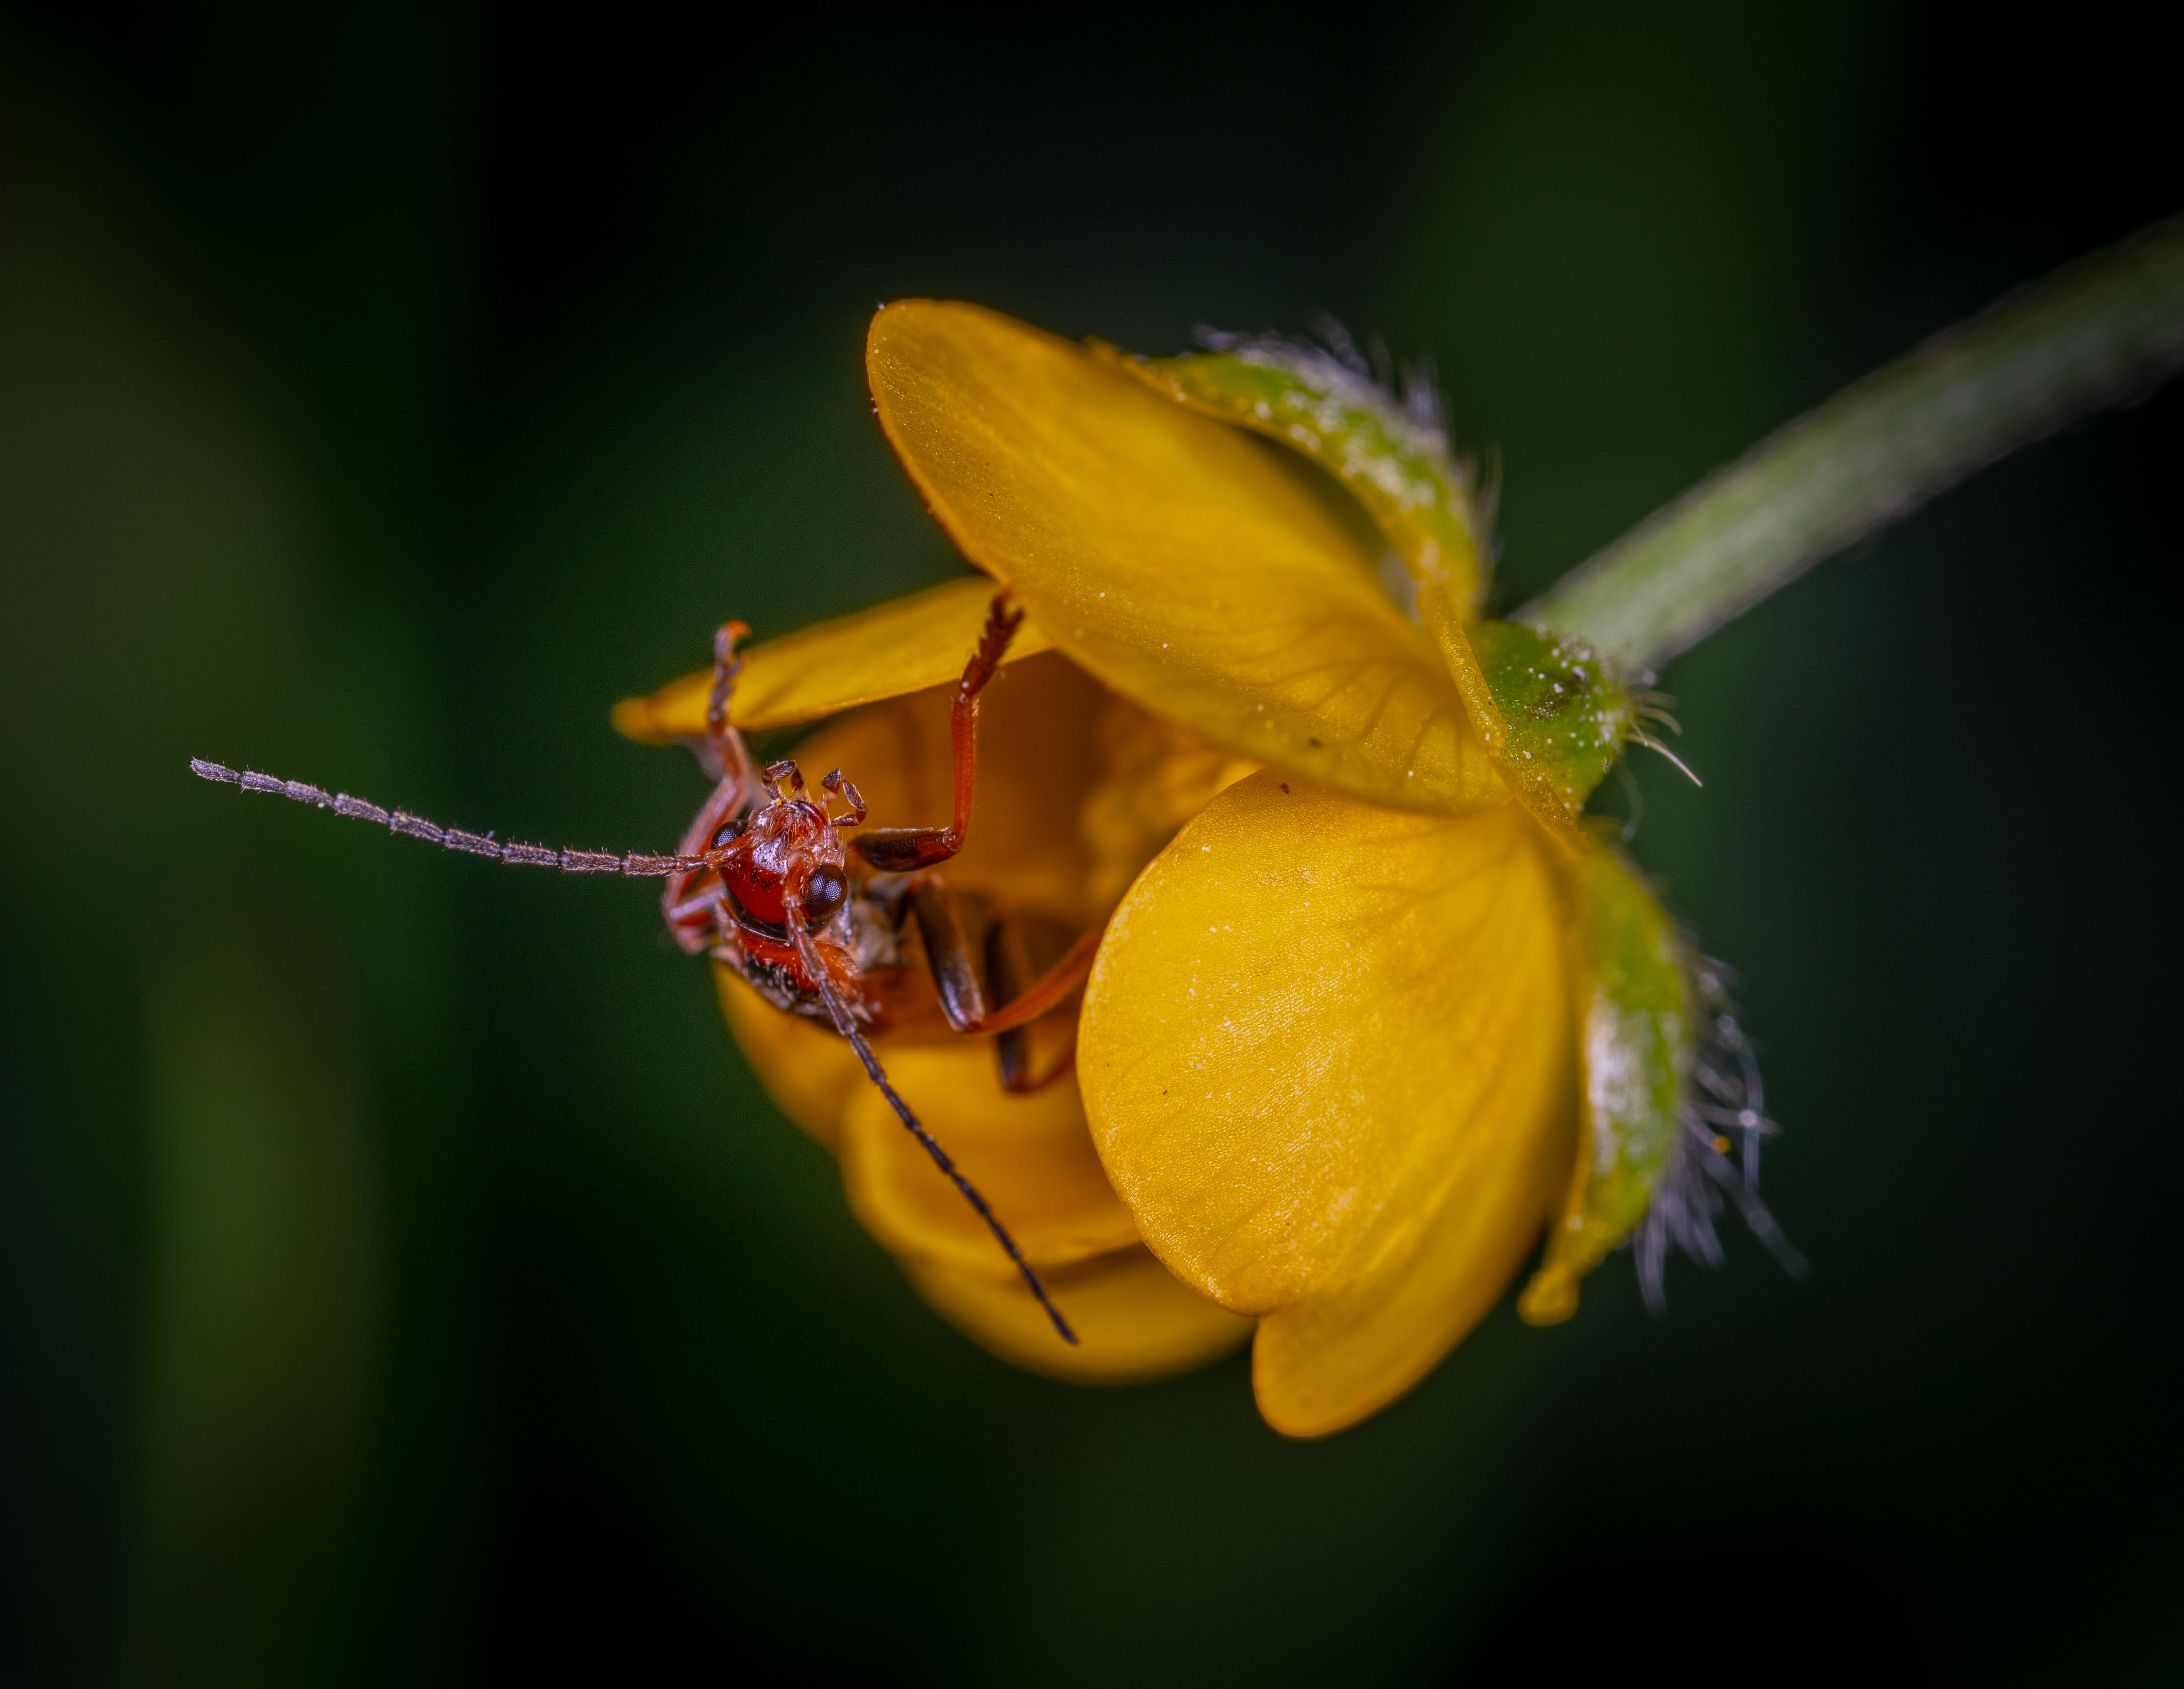 Close Up Photo of Red Insect on Yellow Petaled Flower